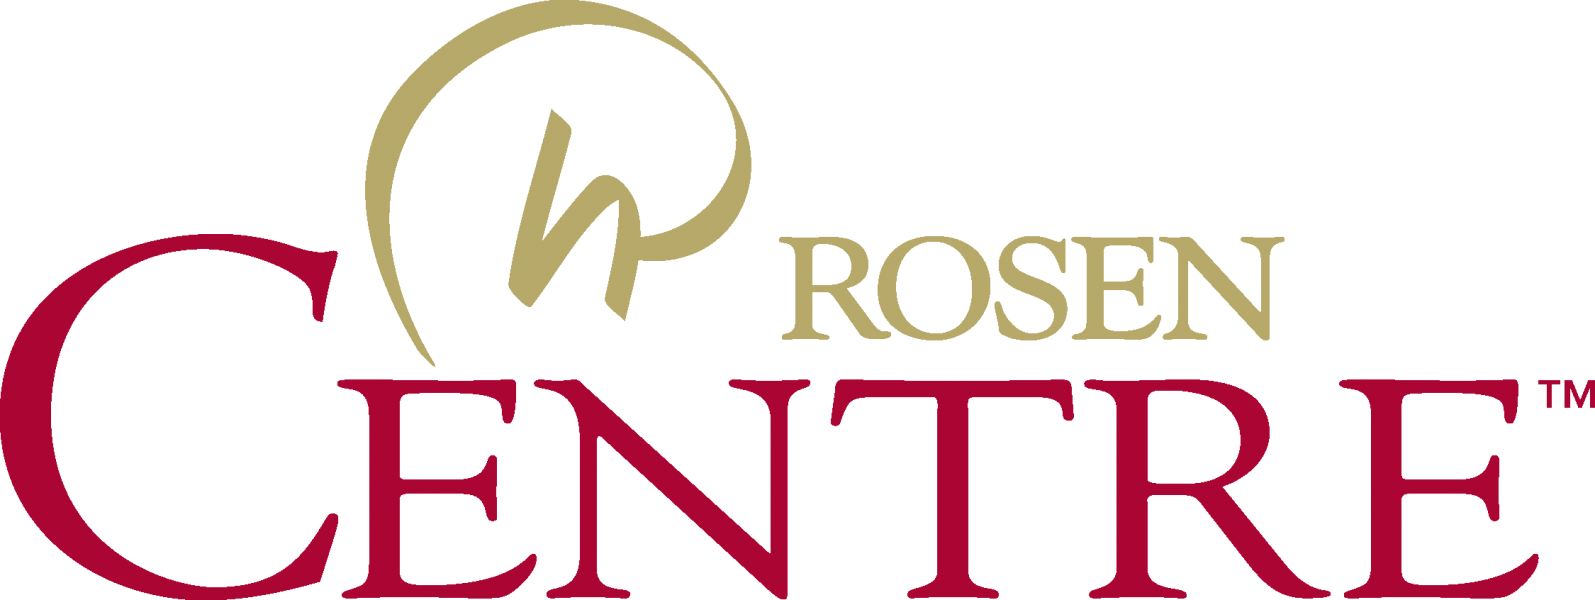 Rosen Centre Hotel Color Logo